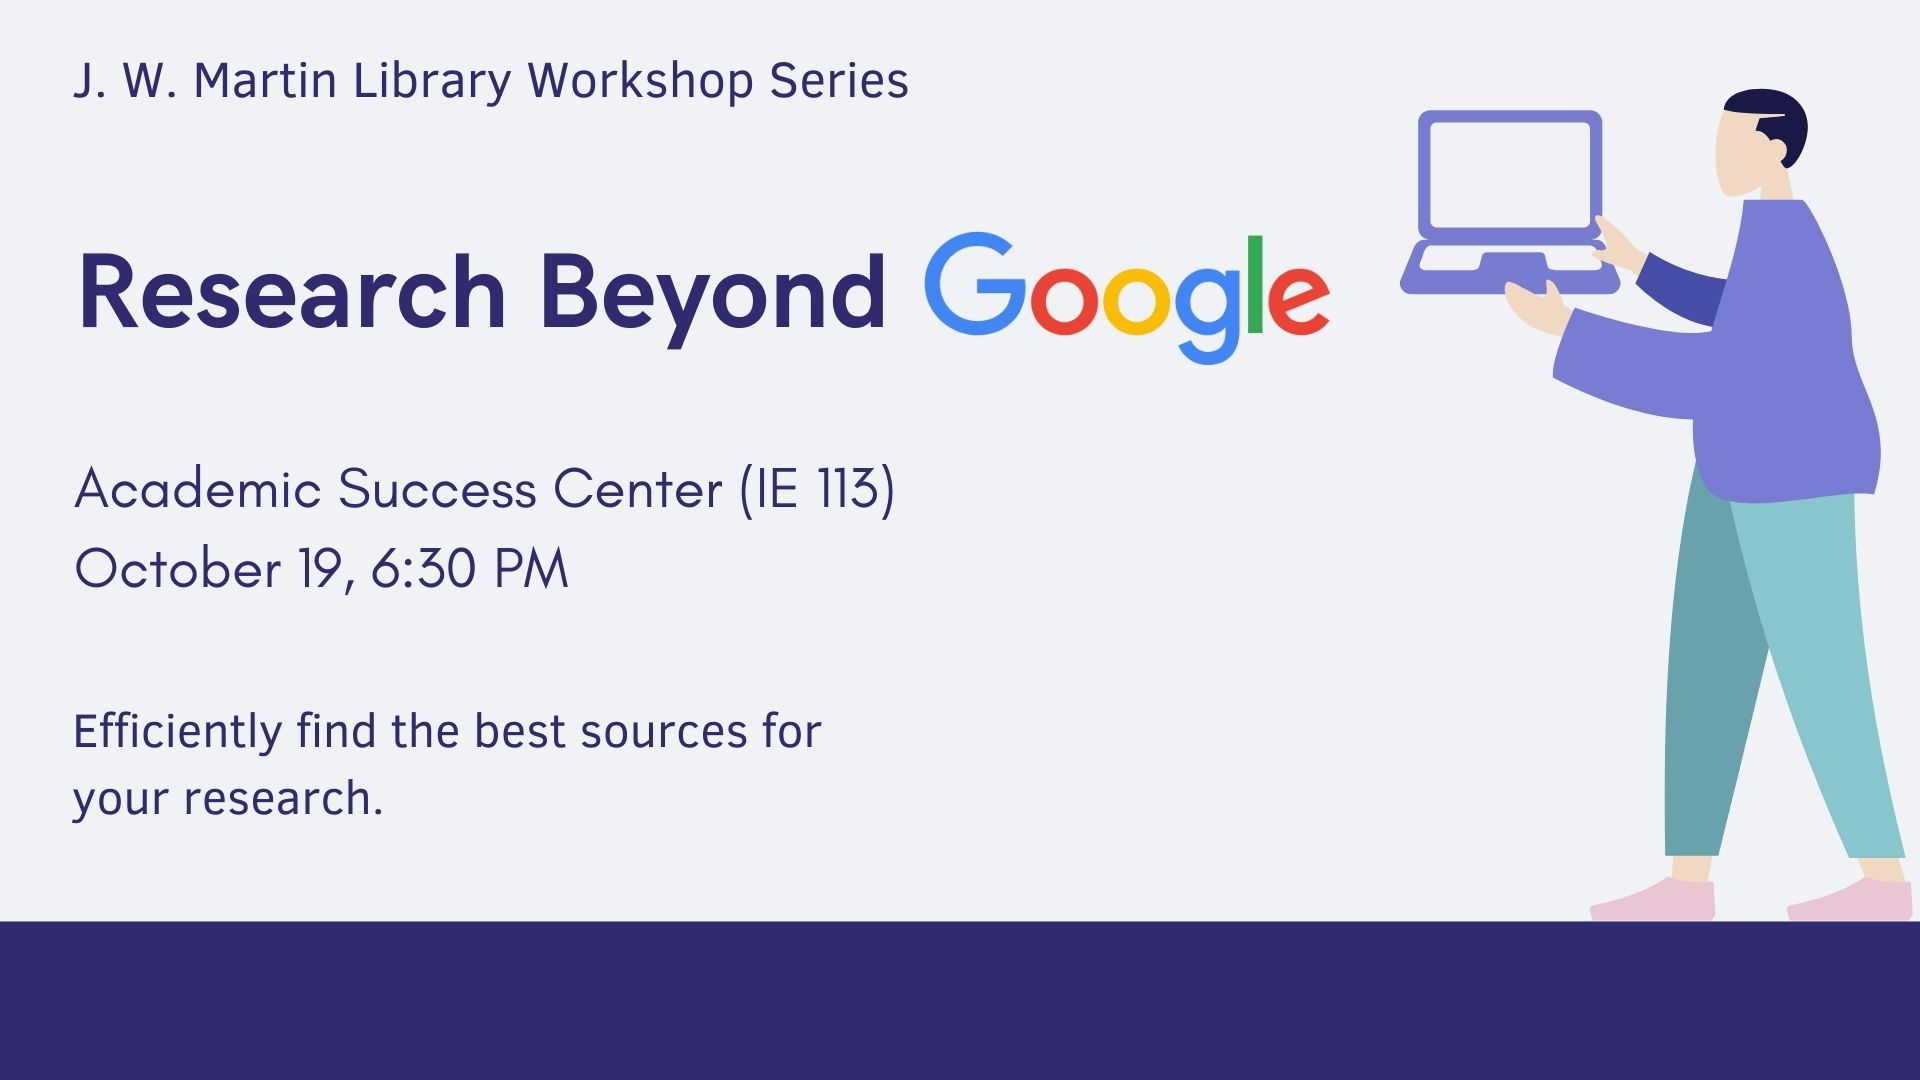 Research Beyond Google workshop in the Academic Success Center, October 19, at 6:30 PM.